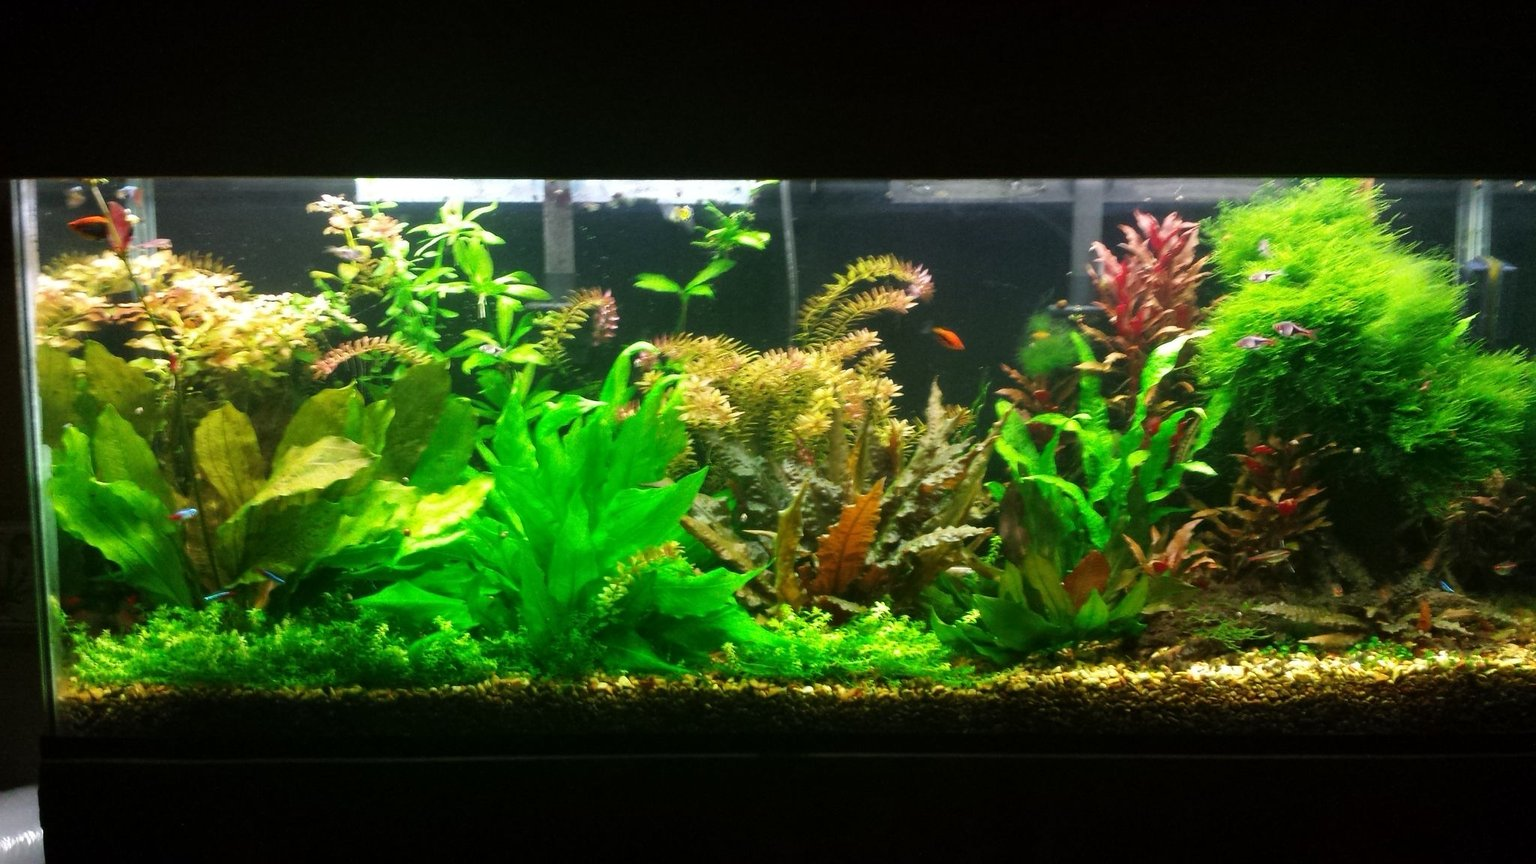 55 gallons planted tank (mostly live plants and fish) - Updated pic of 55 gallon